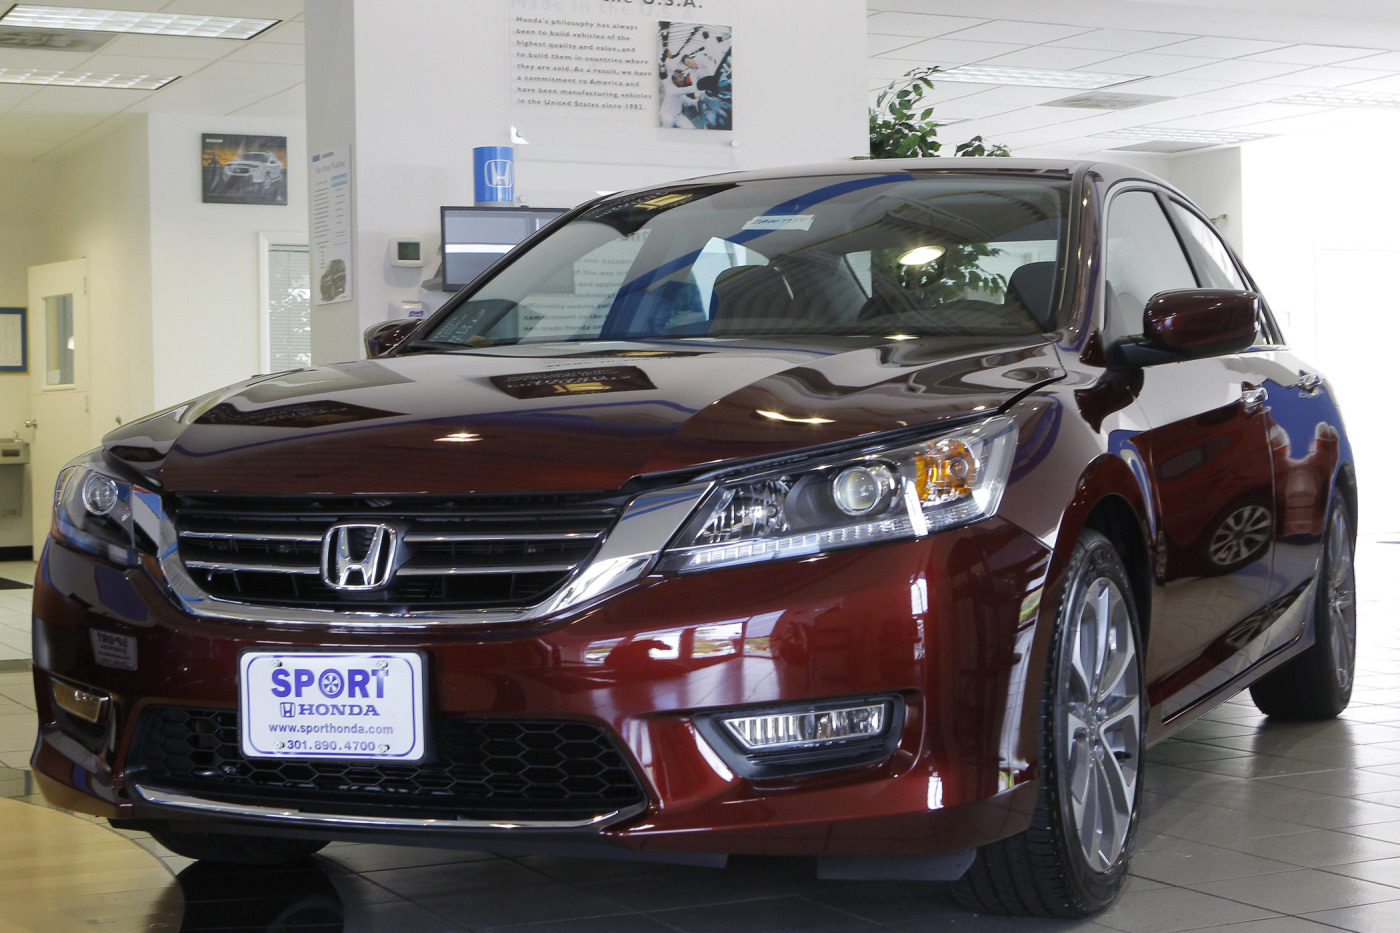 A new 2013 Honda Accord is shown on the sales floor at Sport Honda in Silver Spring, Maryland Sept. 17, 2012.